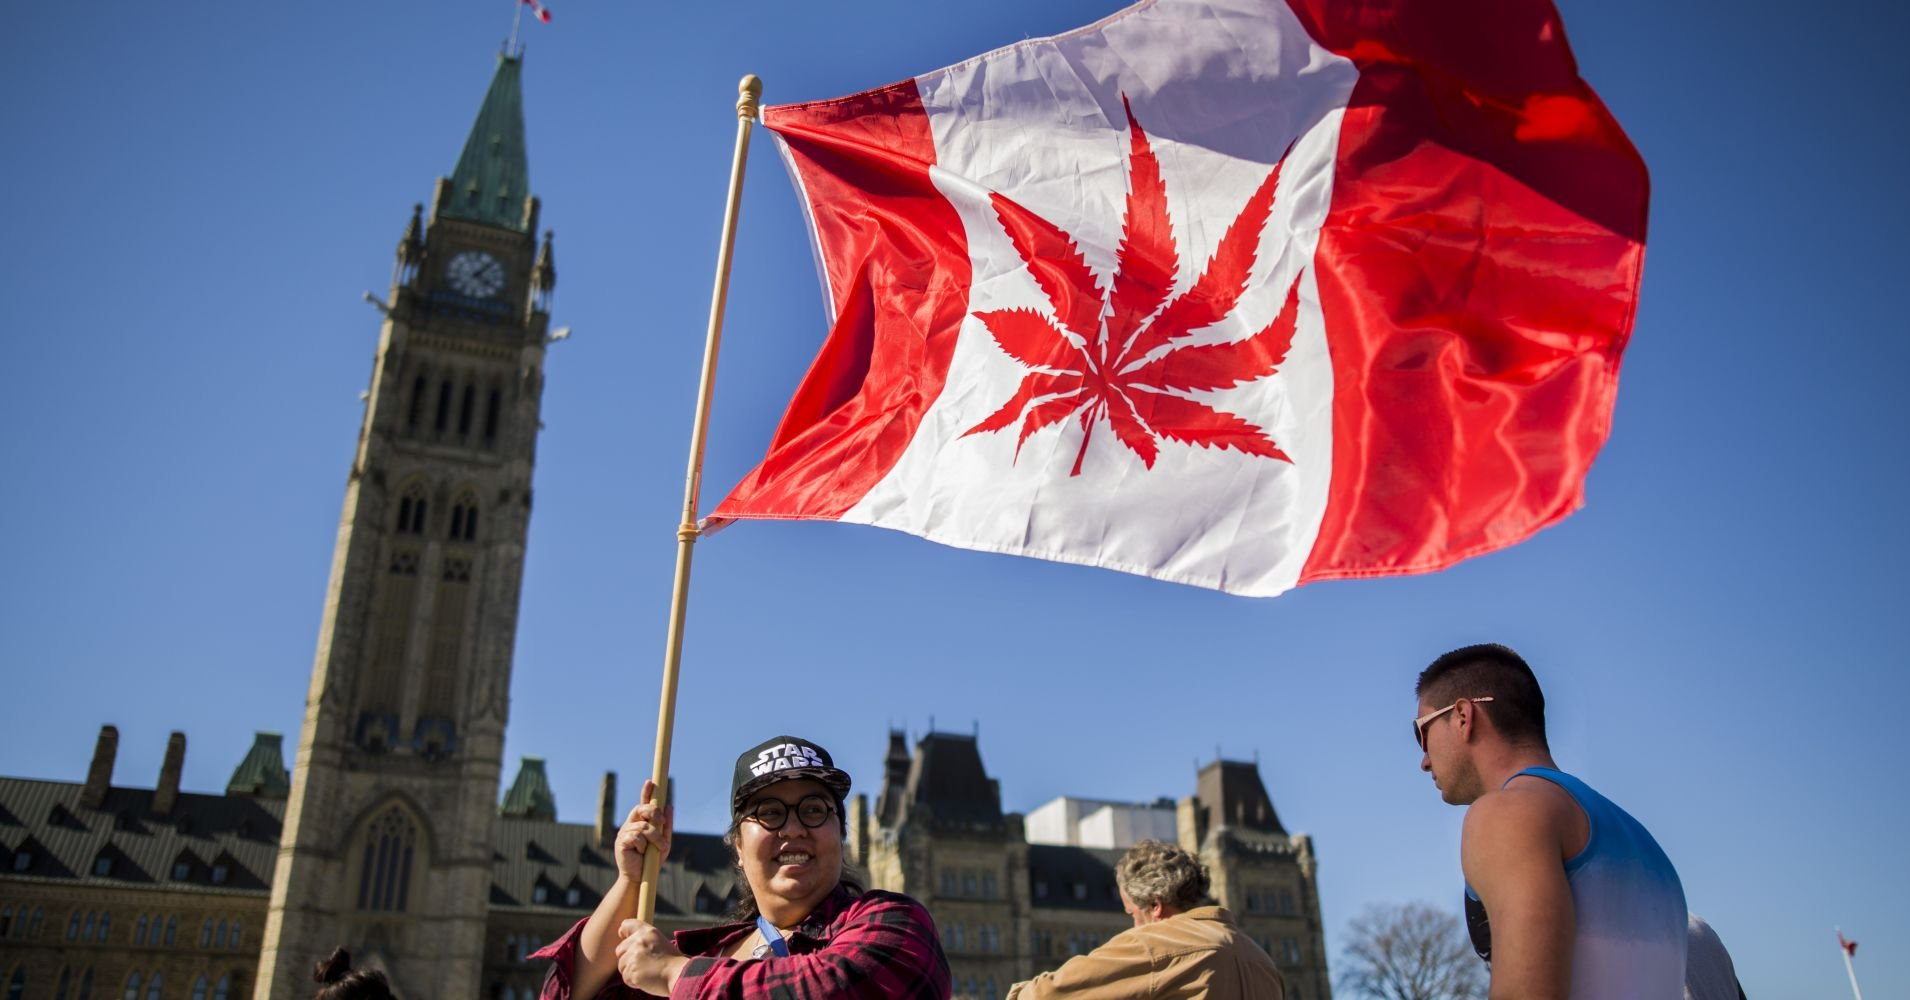 Eyes of the global marijuana industry are on Canada as it legalizes recreational use